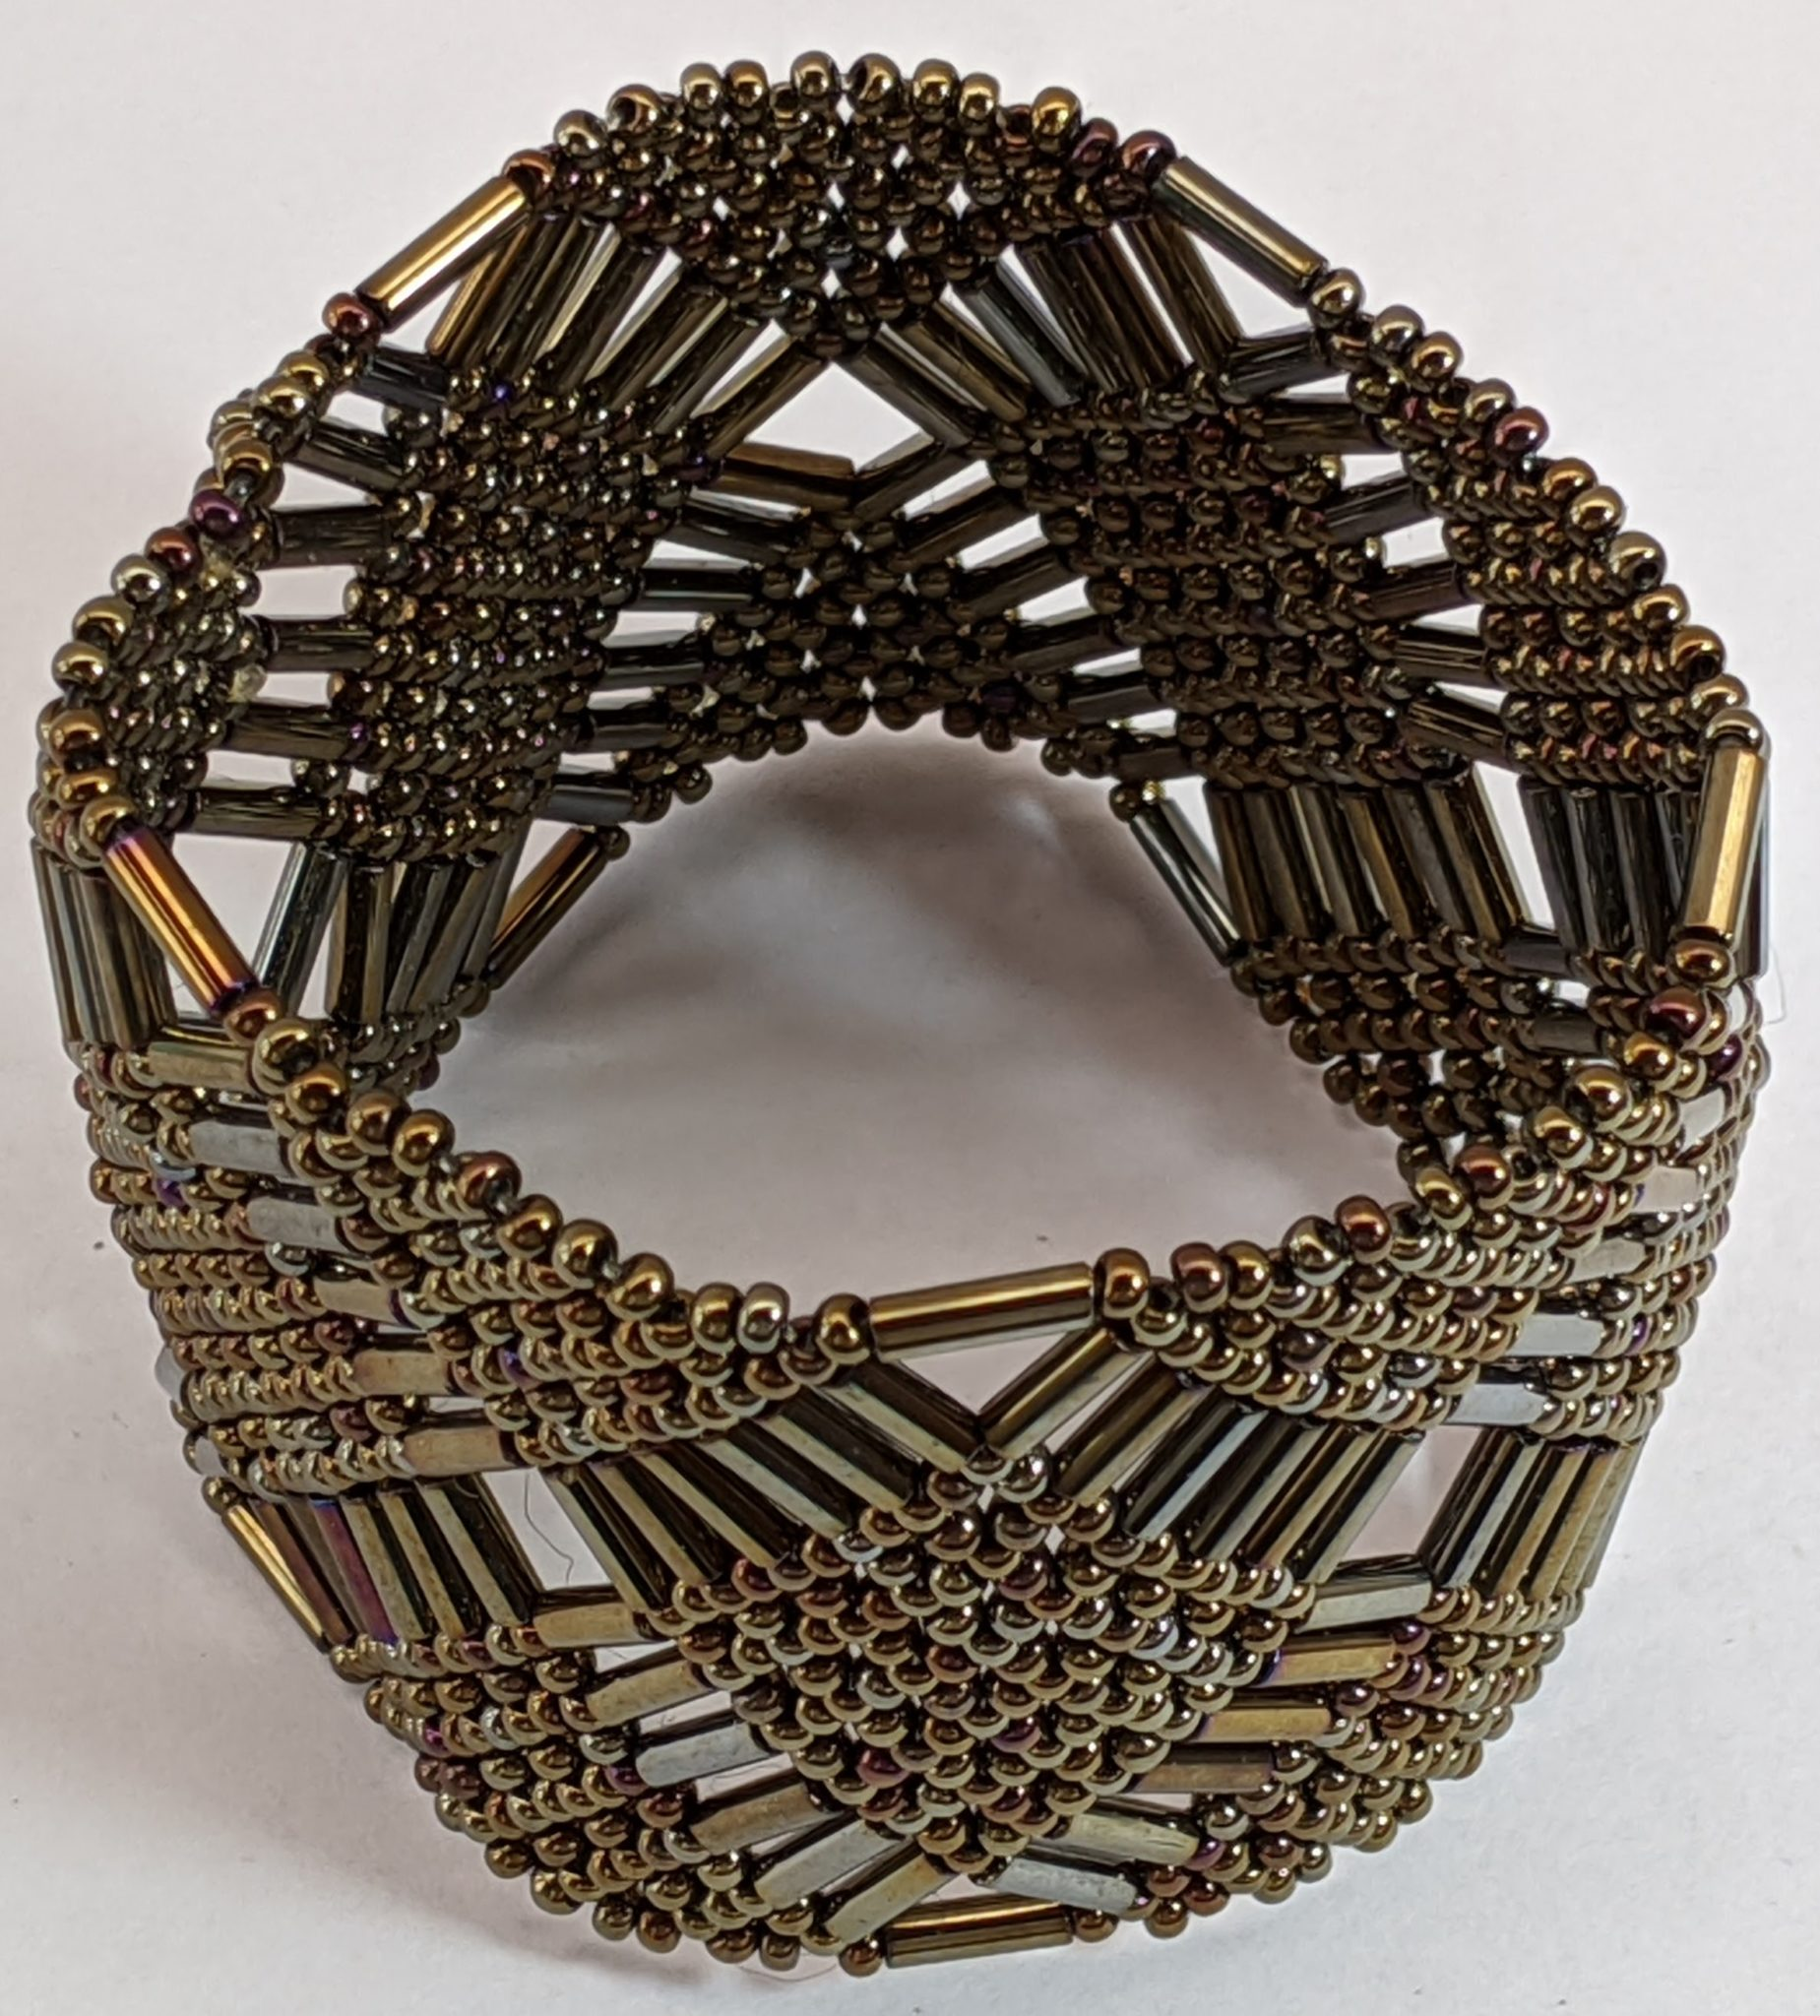 Beaded Elastic Geometric Cuff - Iridescent Brown